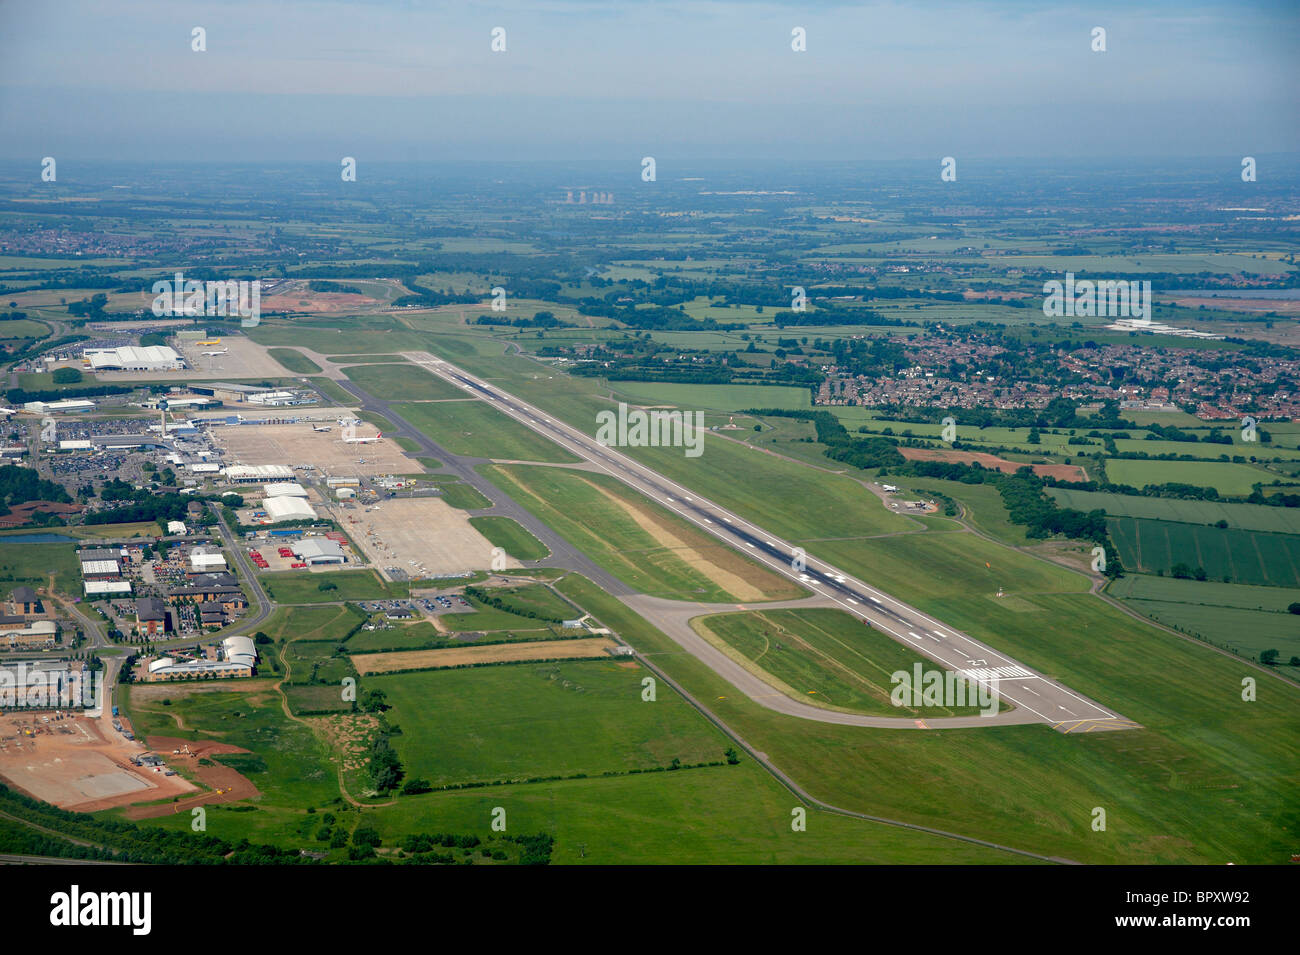 East Midlands Airport, Nottinghamshire, England, UK shot from the air - Stock Image